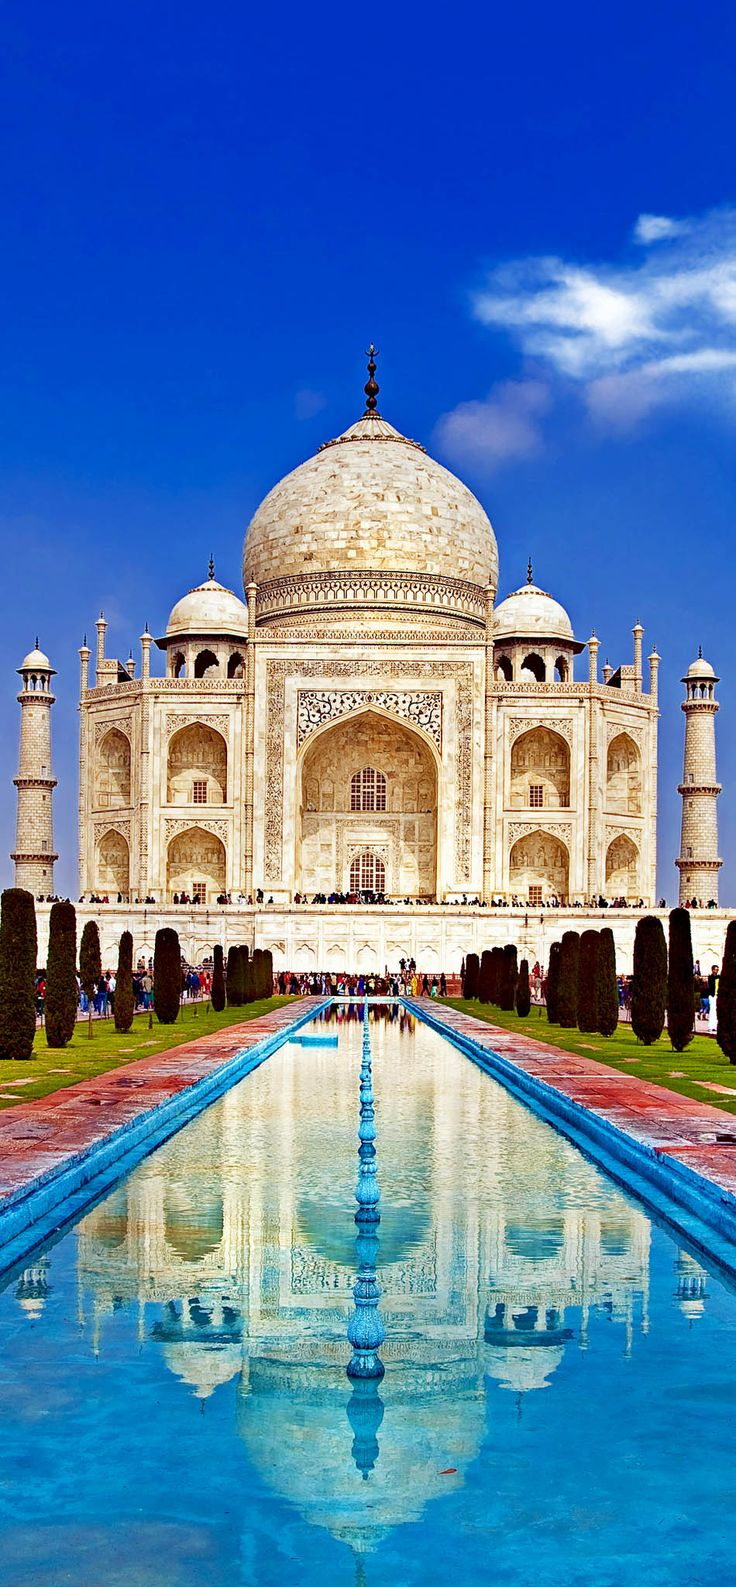 The Taj Mahal, India's architectural crown jewel is one of the seven wonders of the world.